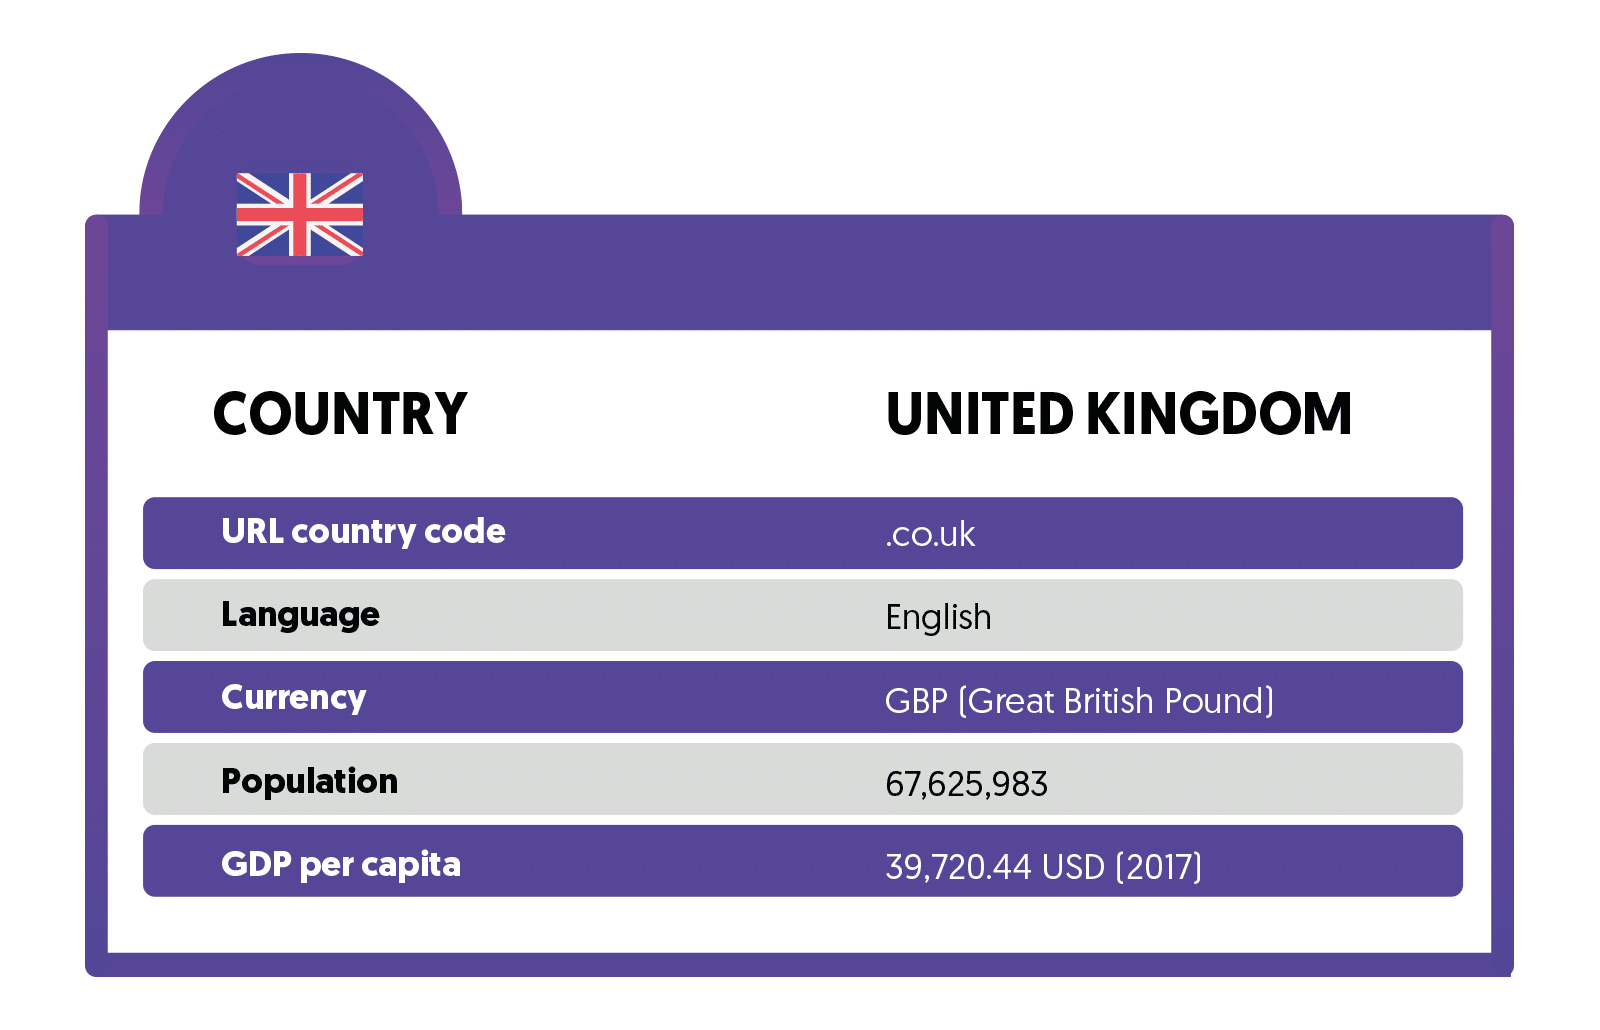 General information about ecommerce in UK